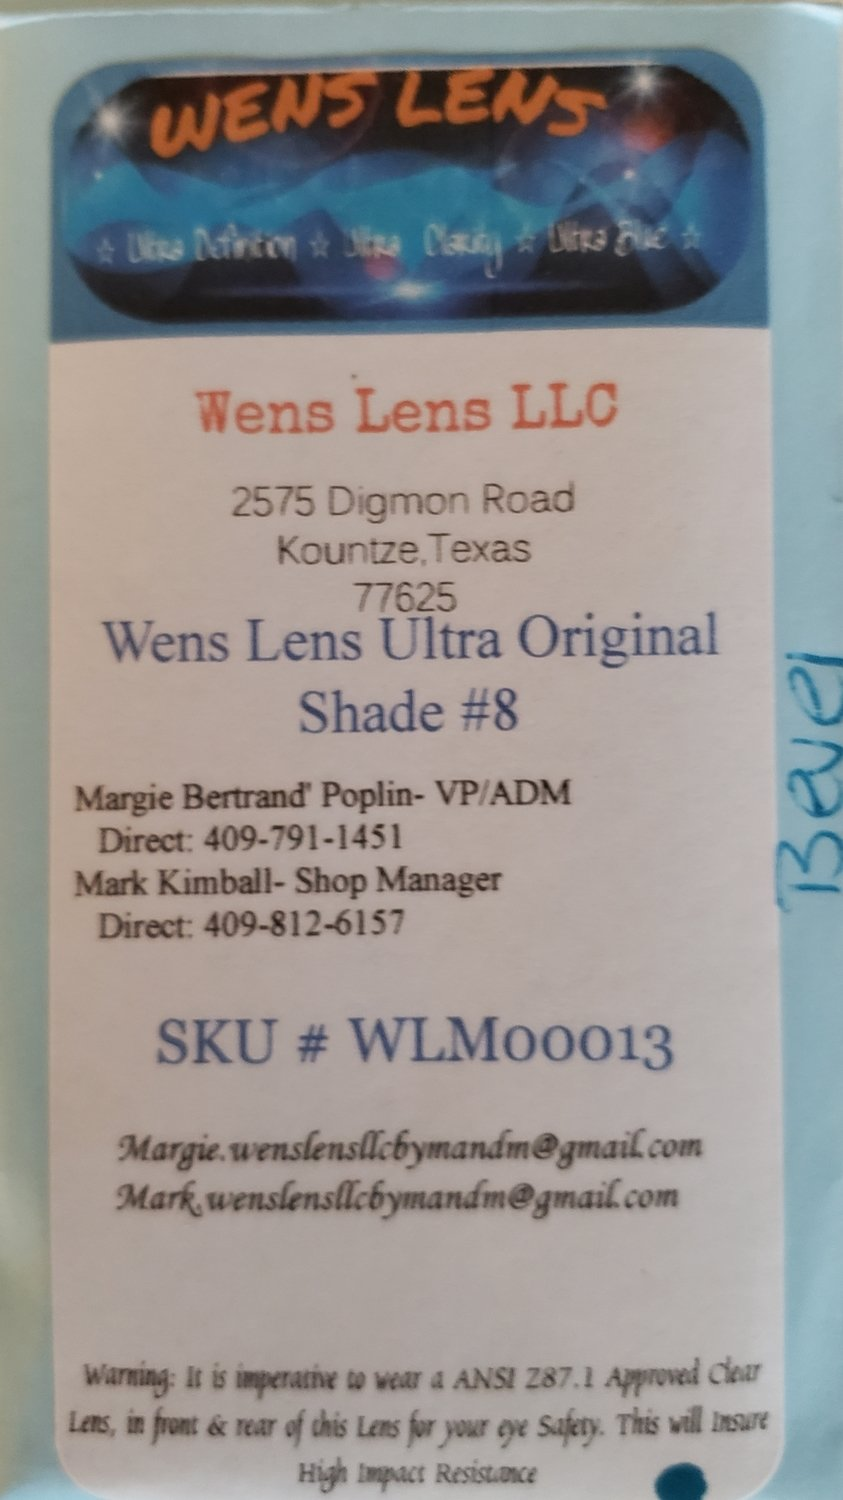 Wens Lens Ultra Original Shade #8